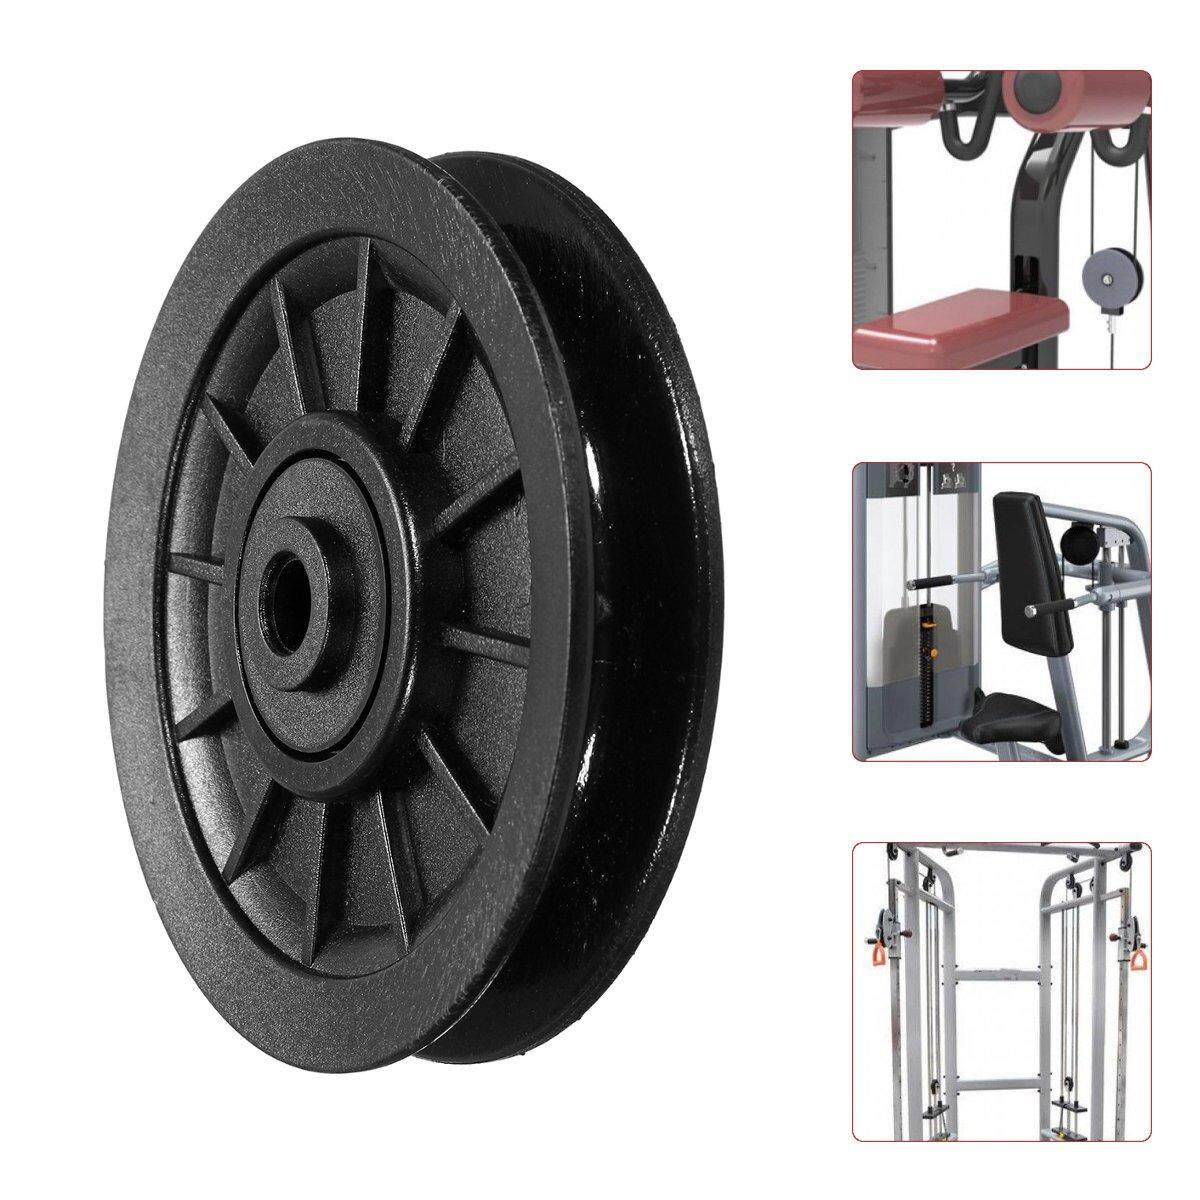 4Pcs Universal Nylon Bearing Pulley Wheel Cable Gym Fitness Equipment Part